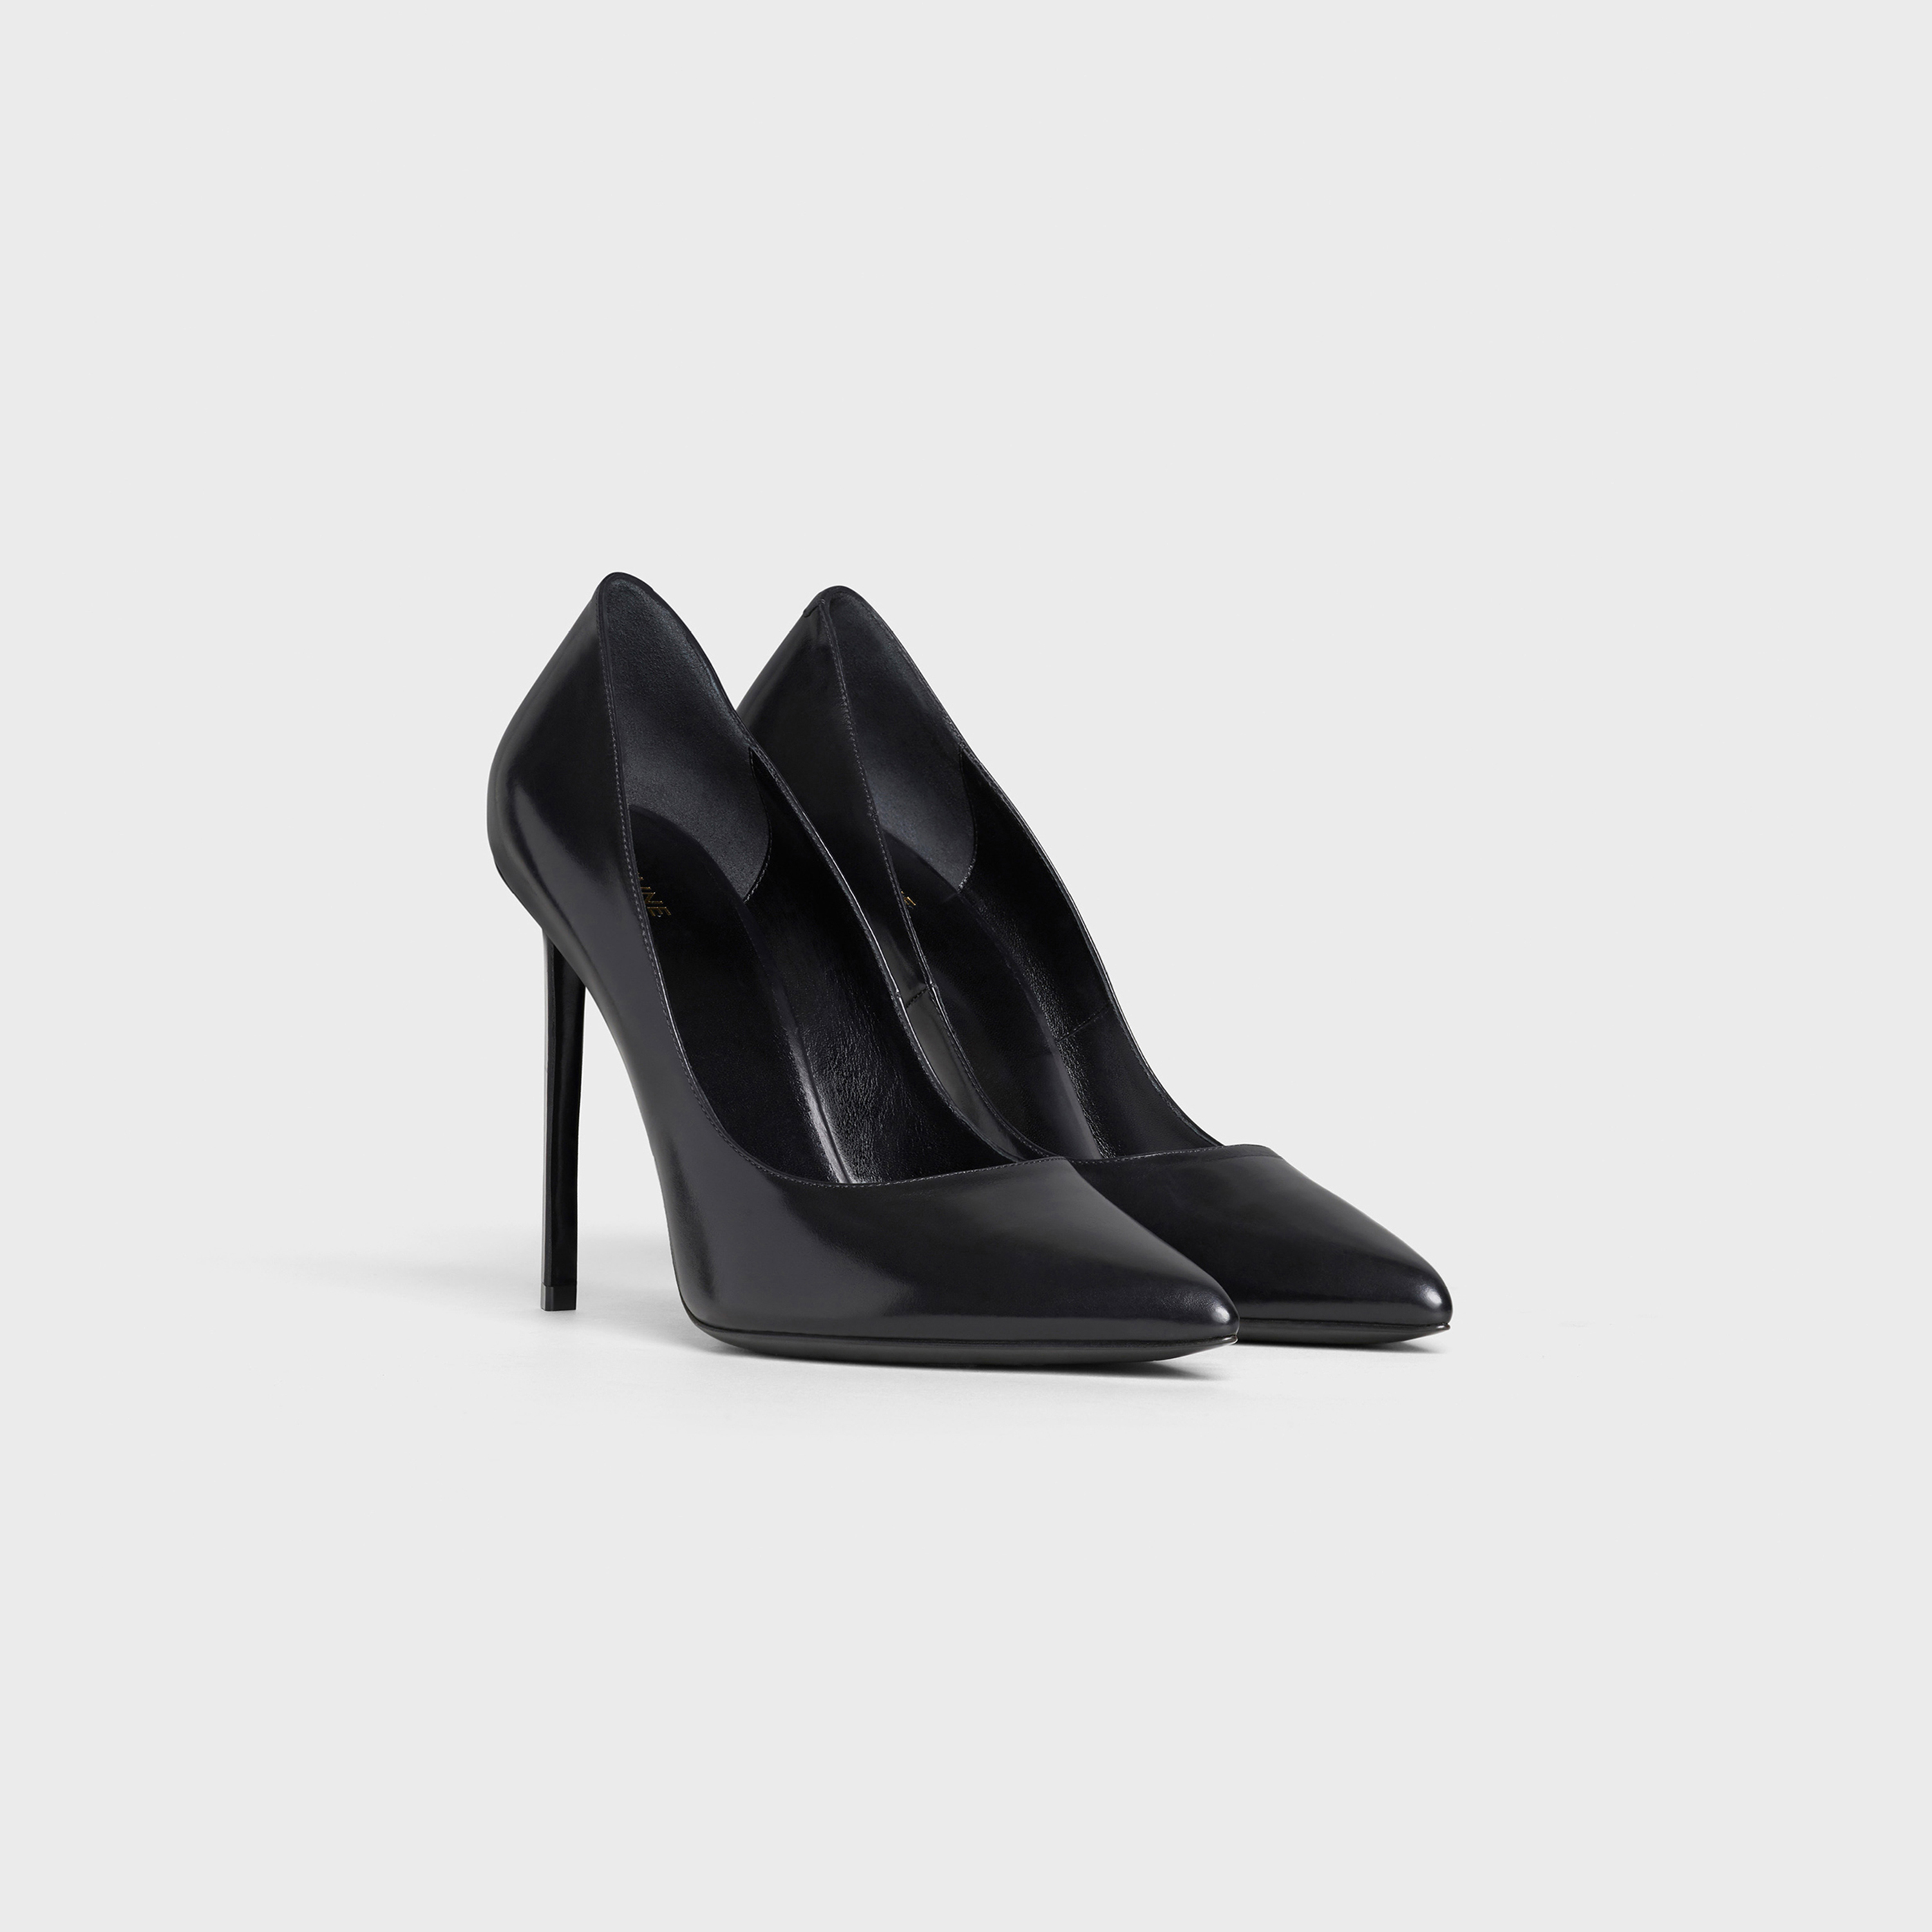 CELINE SHARP Pump in Shiny Calfskin | CELINE